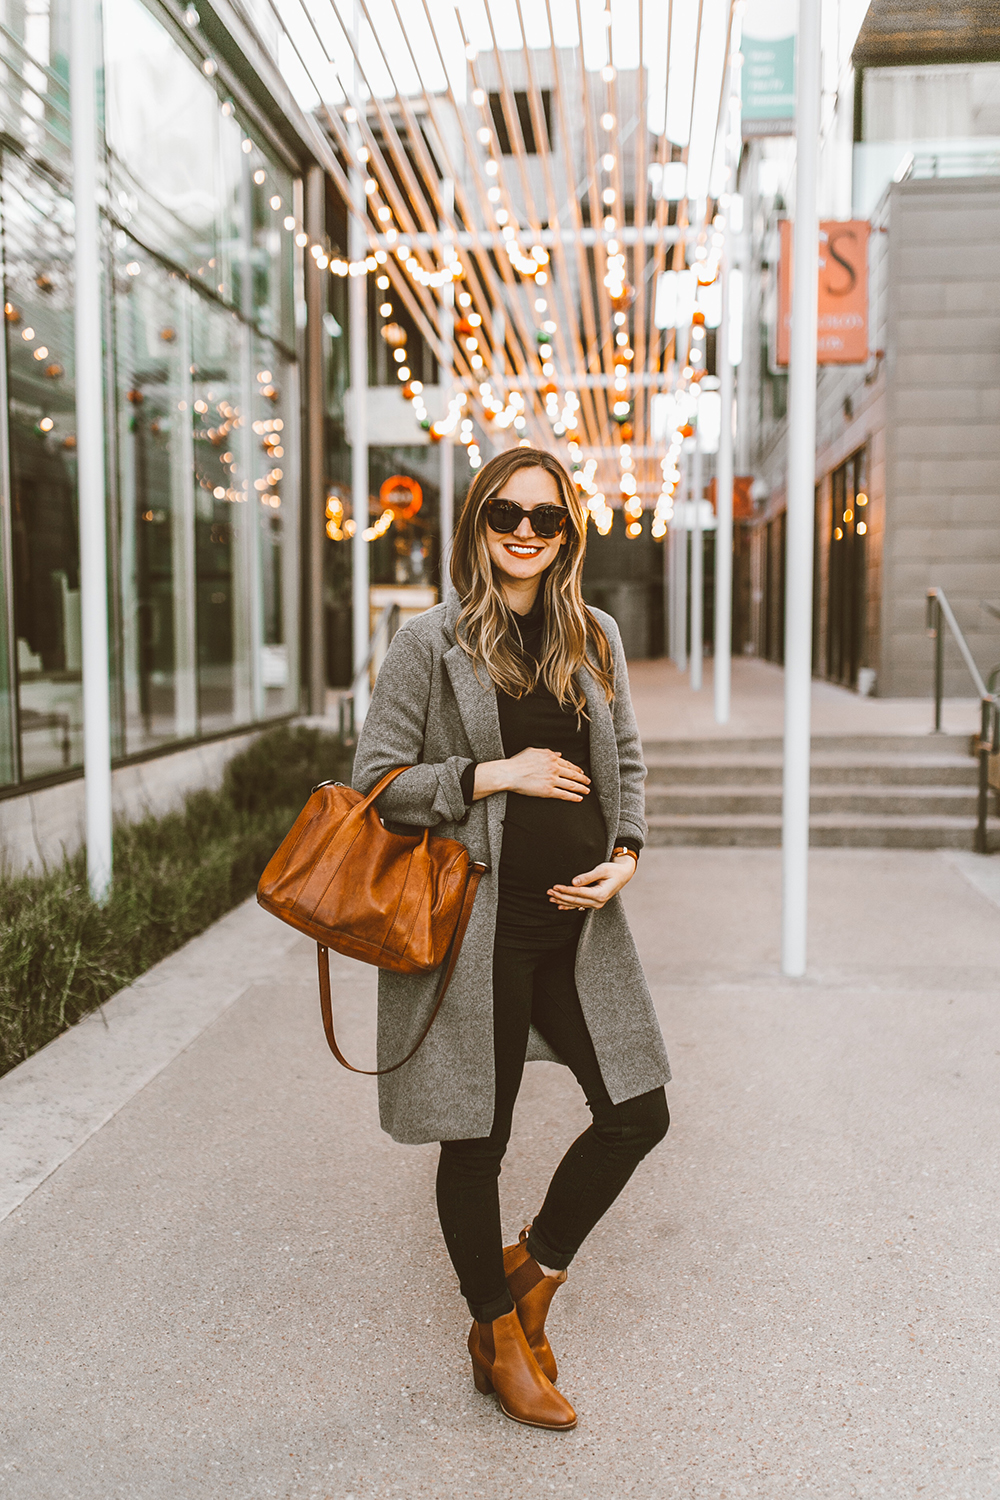 livvyland-blog-olivia-watson-austin-texas-fashion-style-blogger-third-trimester-outfit-pregnancy-maternity-madewell-double-breasted-sweater-coat-grey-turtleneck-7